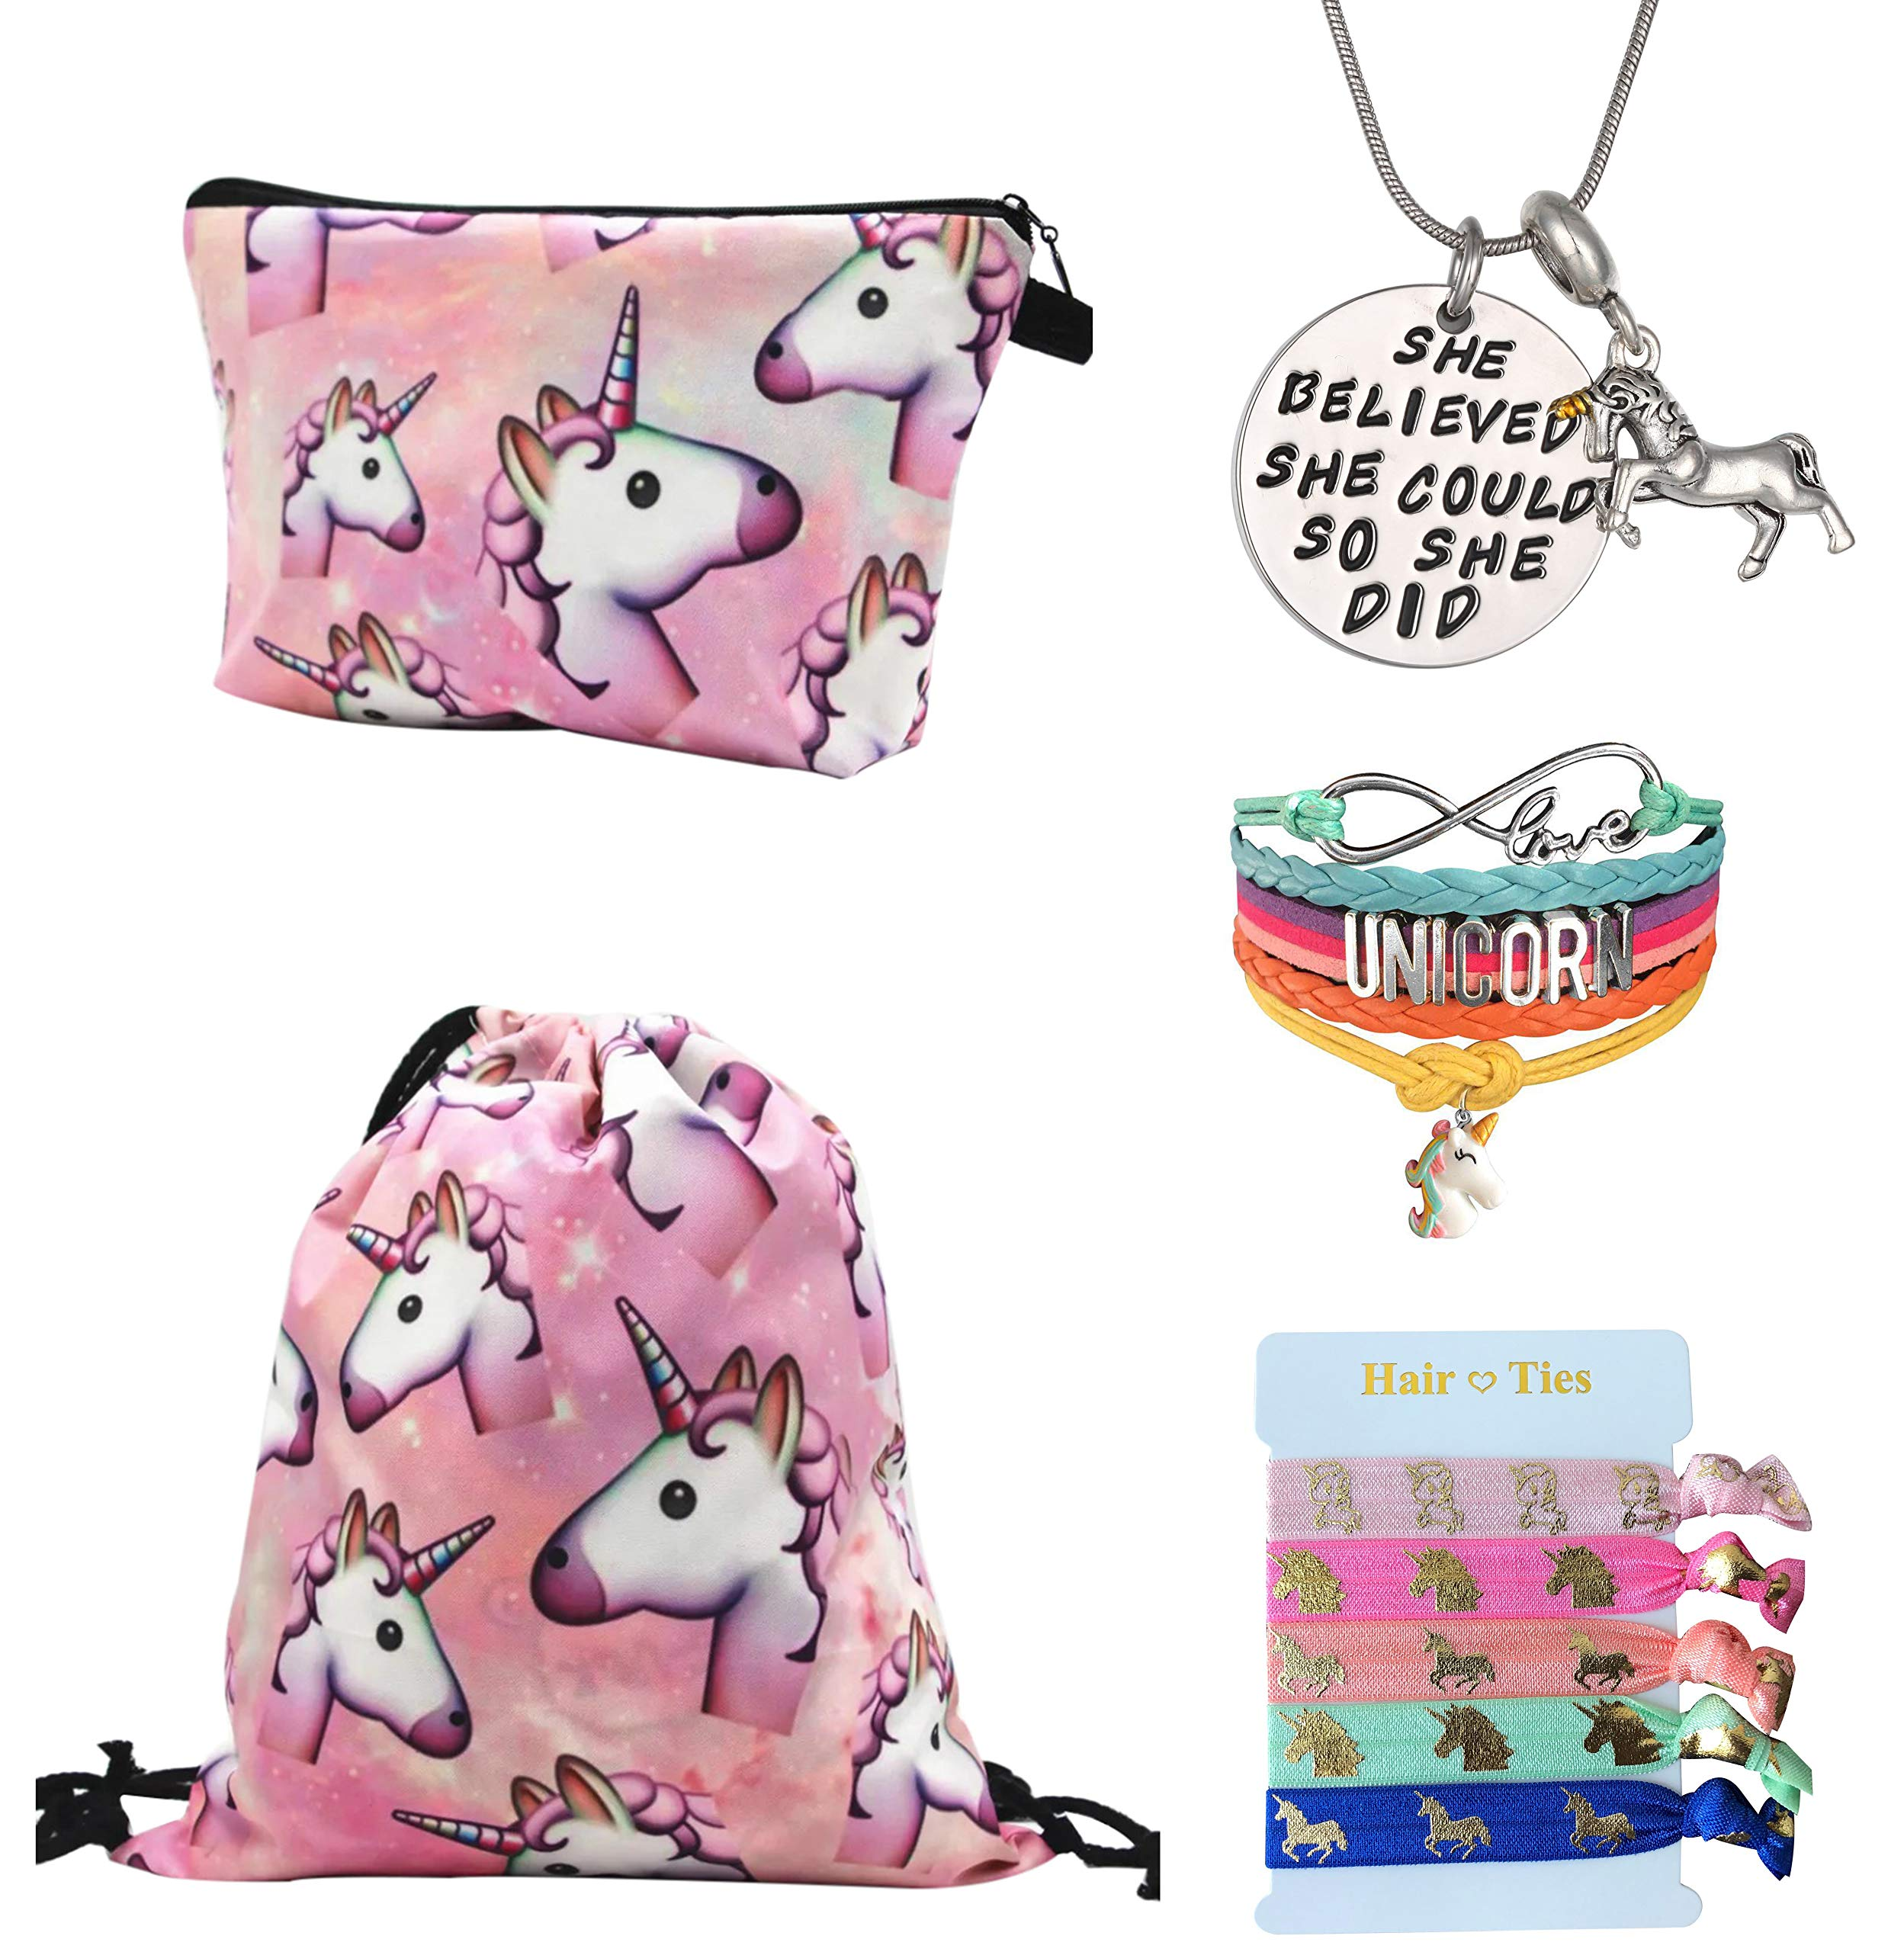 Unicorn Gifts for Girls 5 Pack - Unicorn Drawstring Backpack/Makeup Bag/Bracelet/Inspirational Necklace/Hair Ties (Pink)